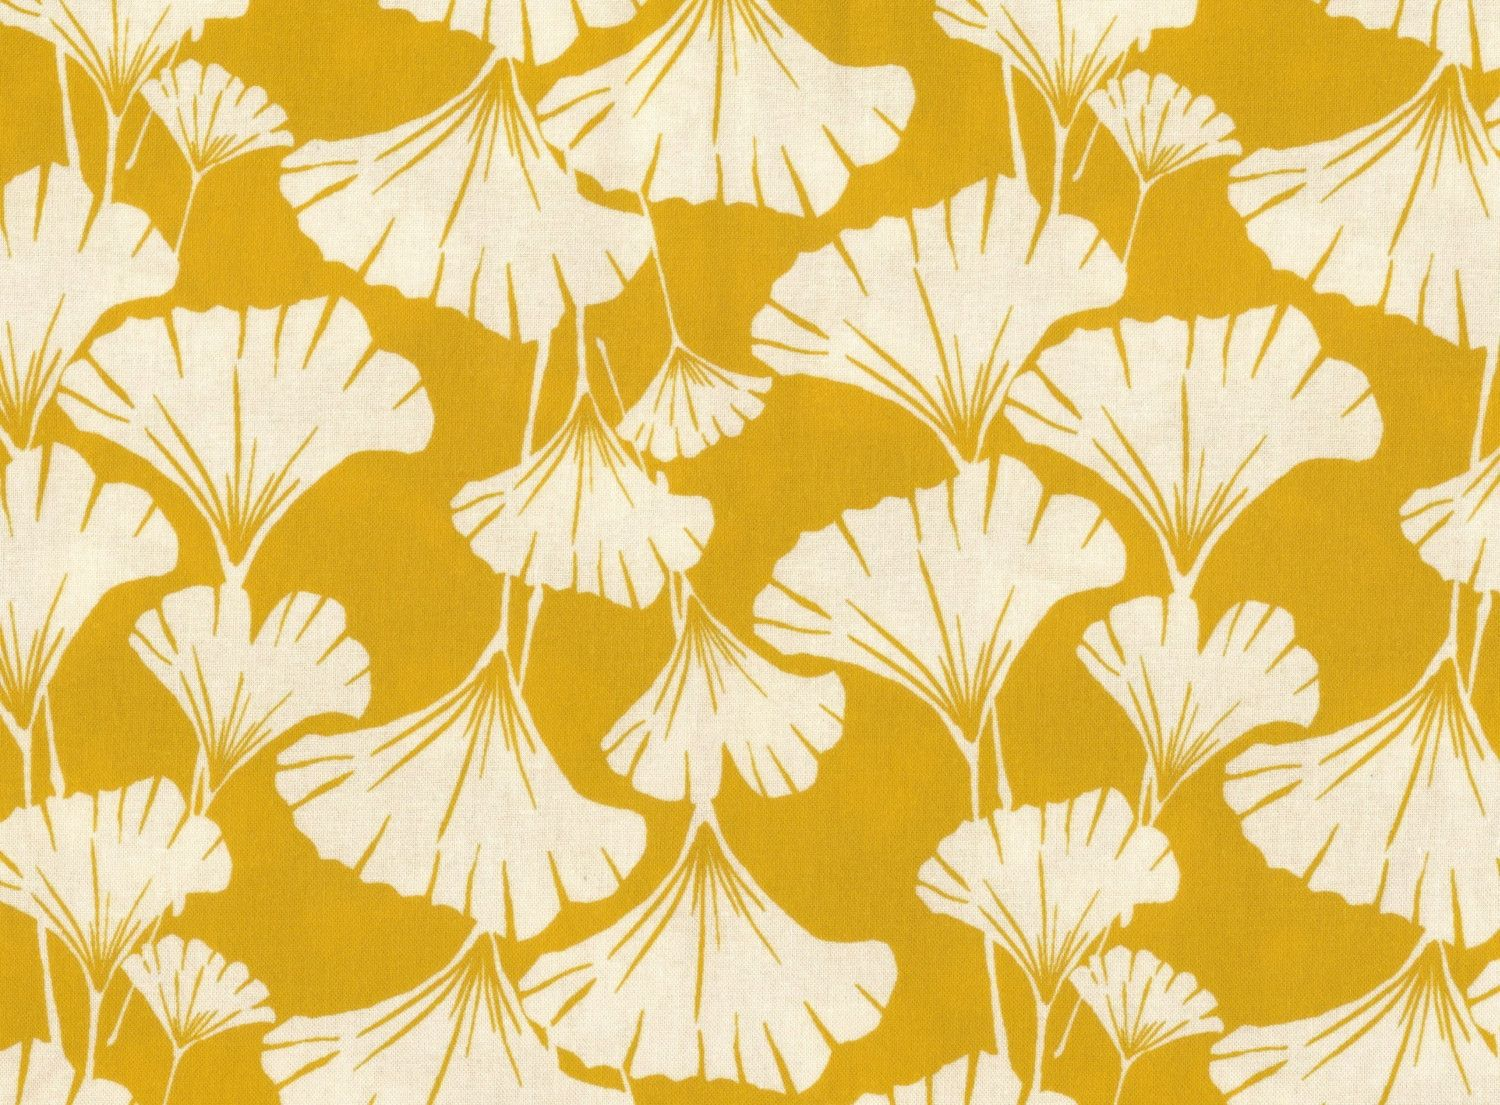 Ginkgo leaves print fabric -mustard yellow-one yard-quilting